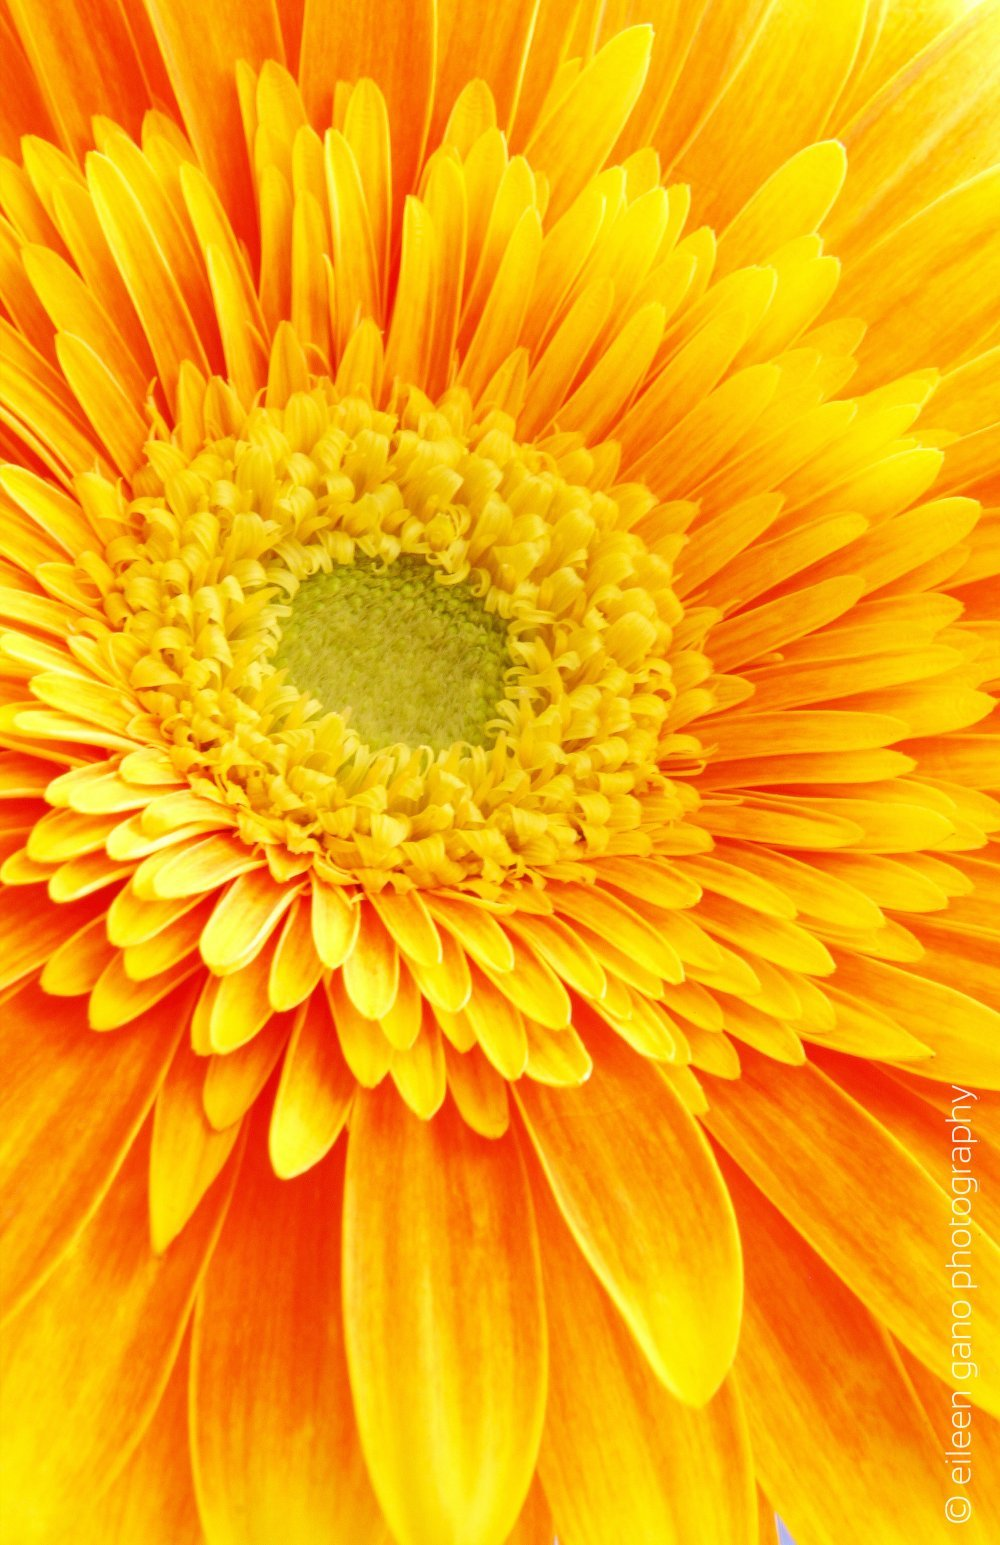 4-yellow-orange-gerber-daisy-close-up-eileen-gano